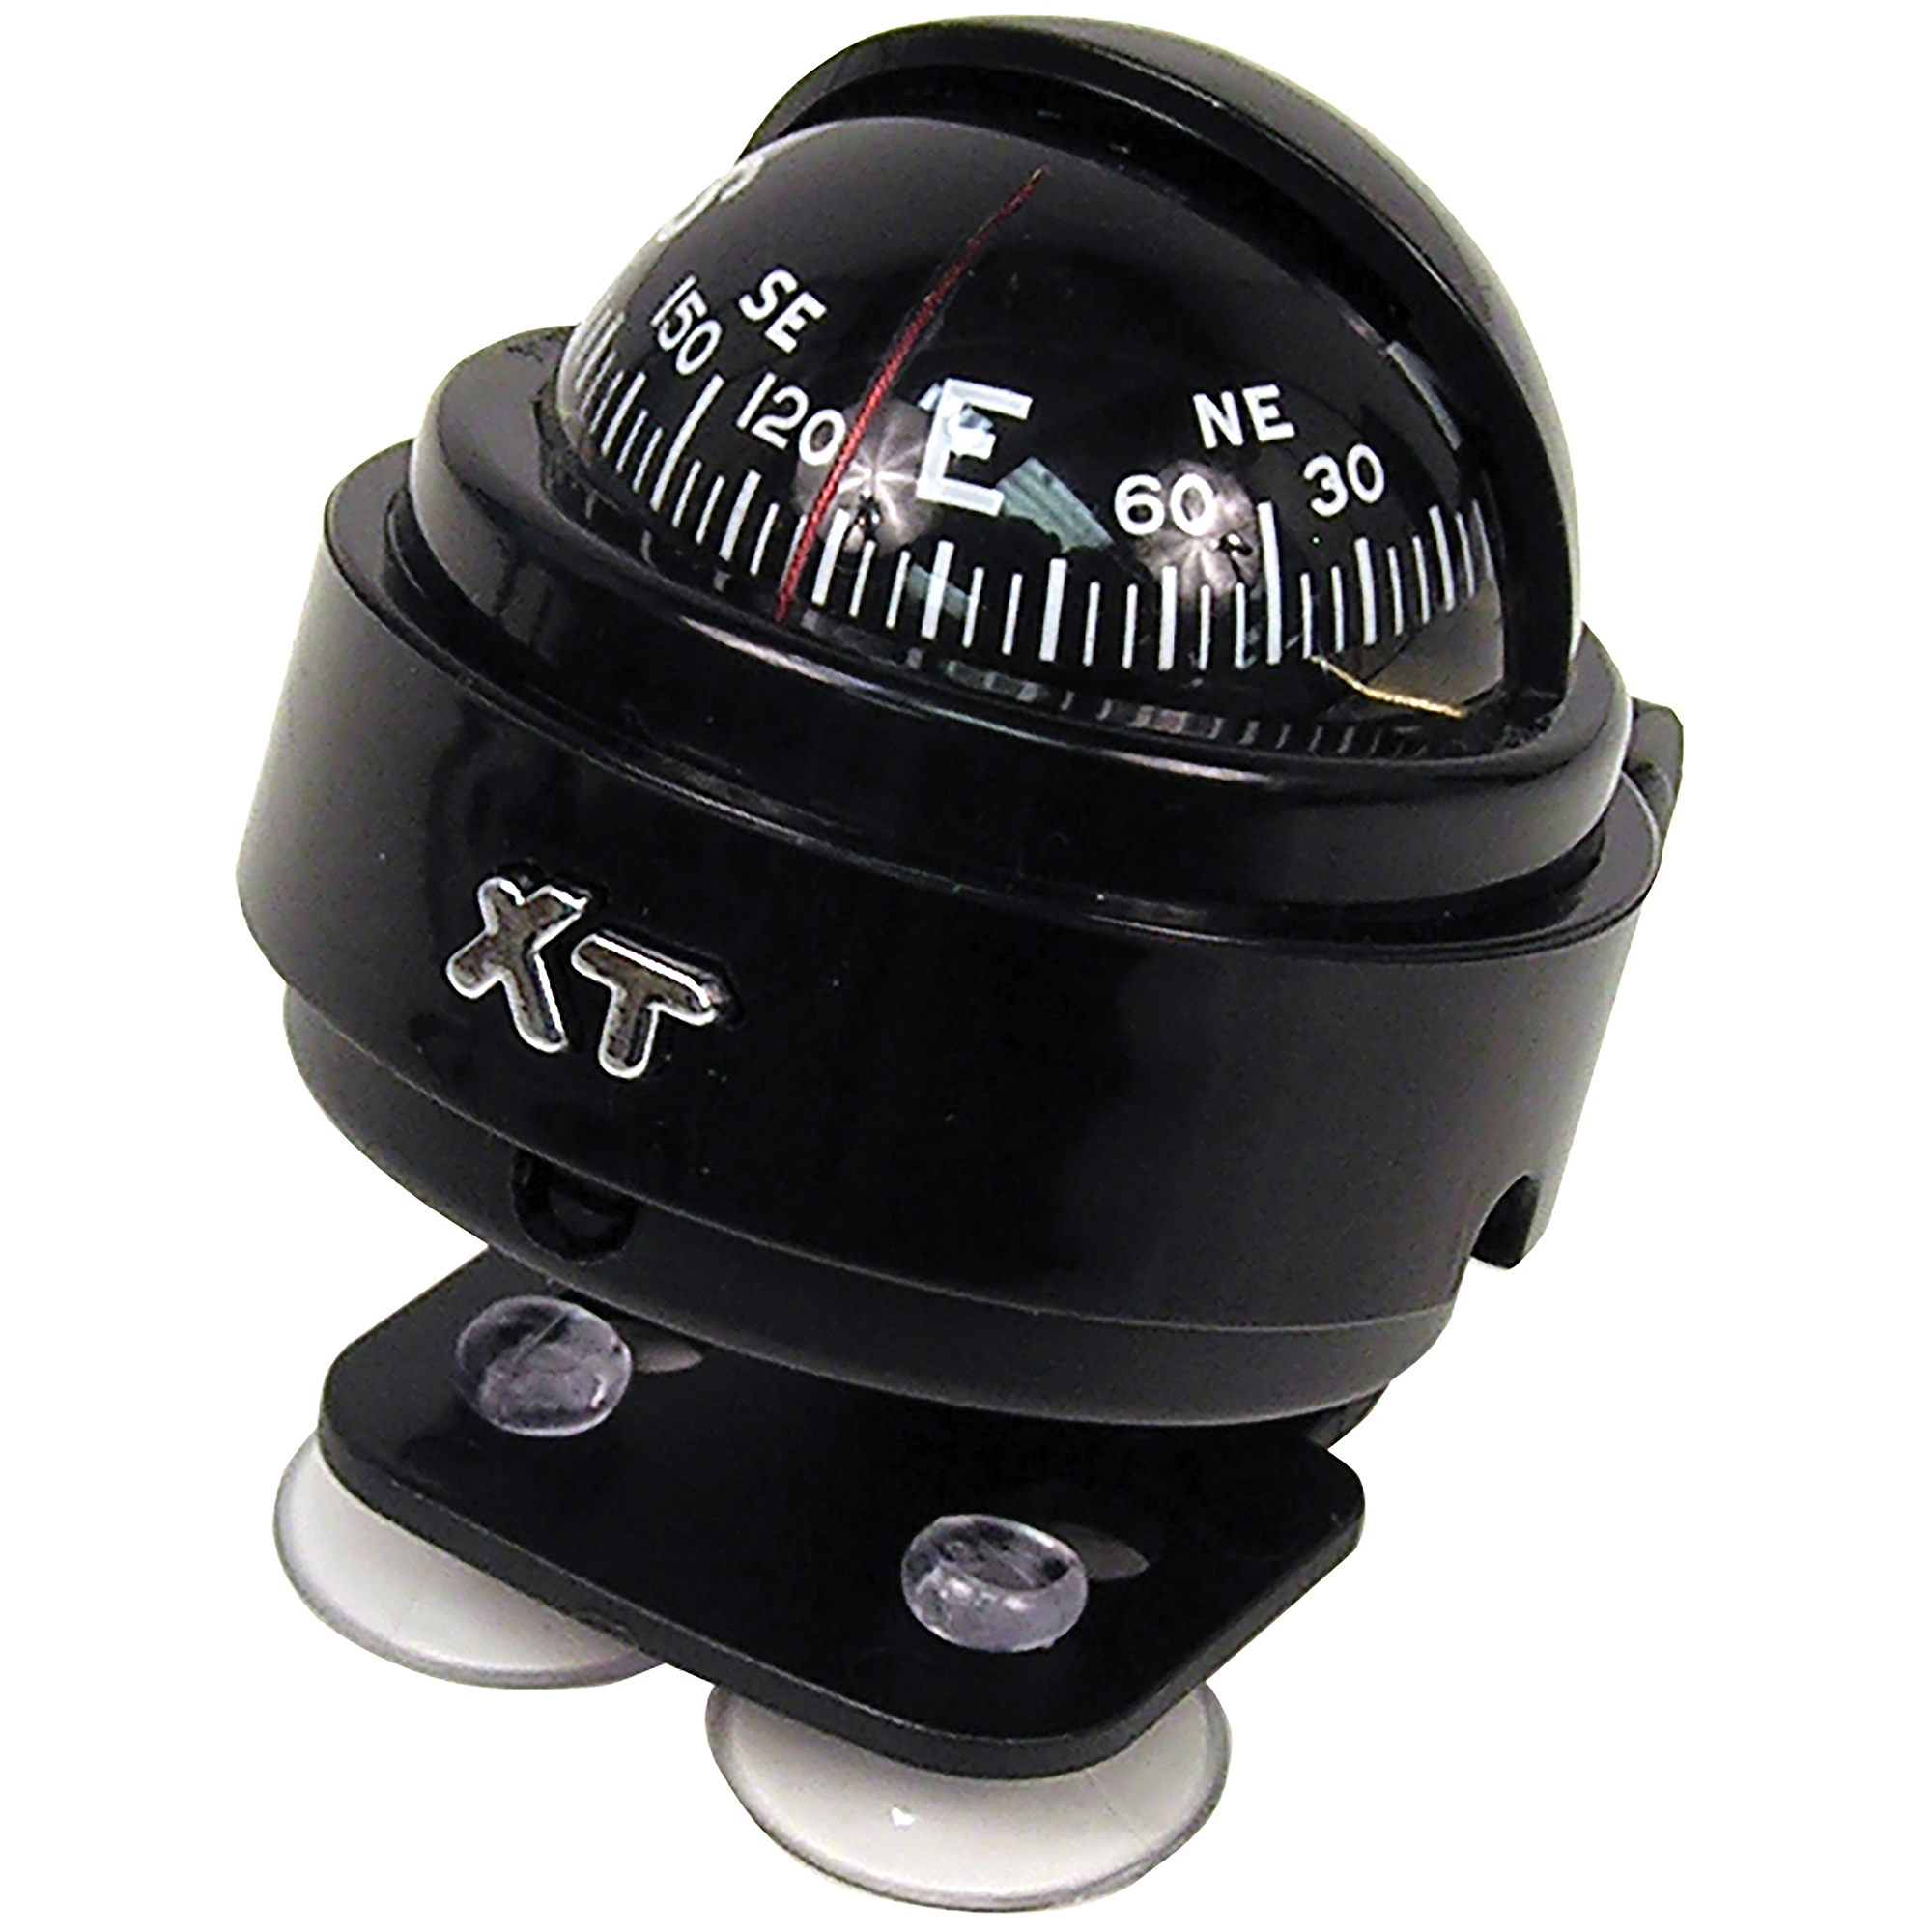 Auto Drive Lighted Compass, Black